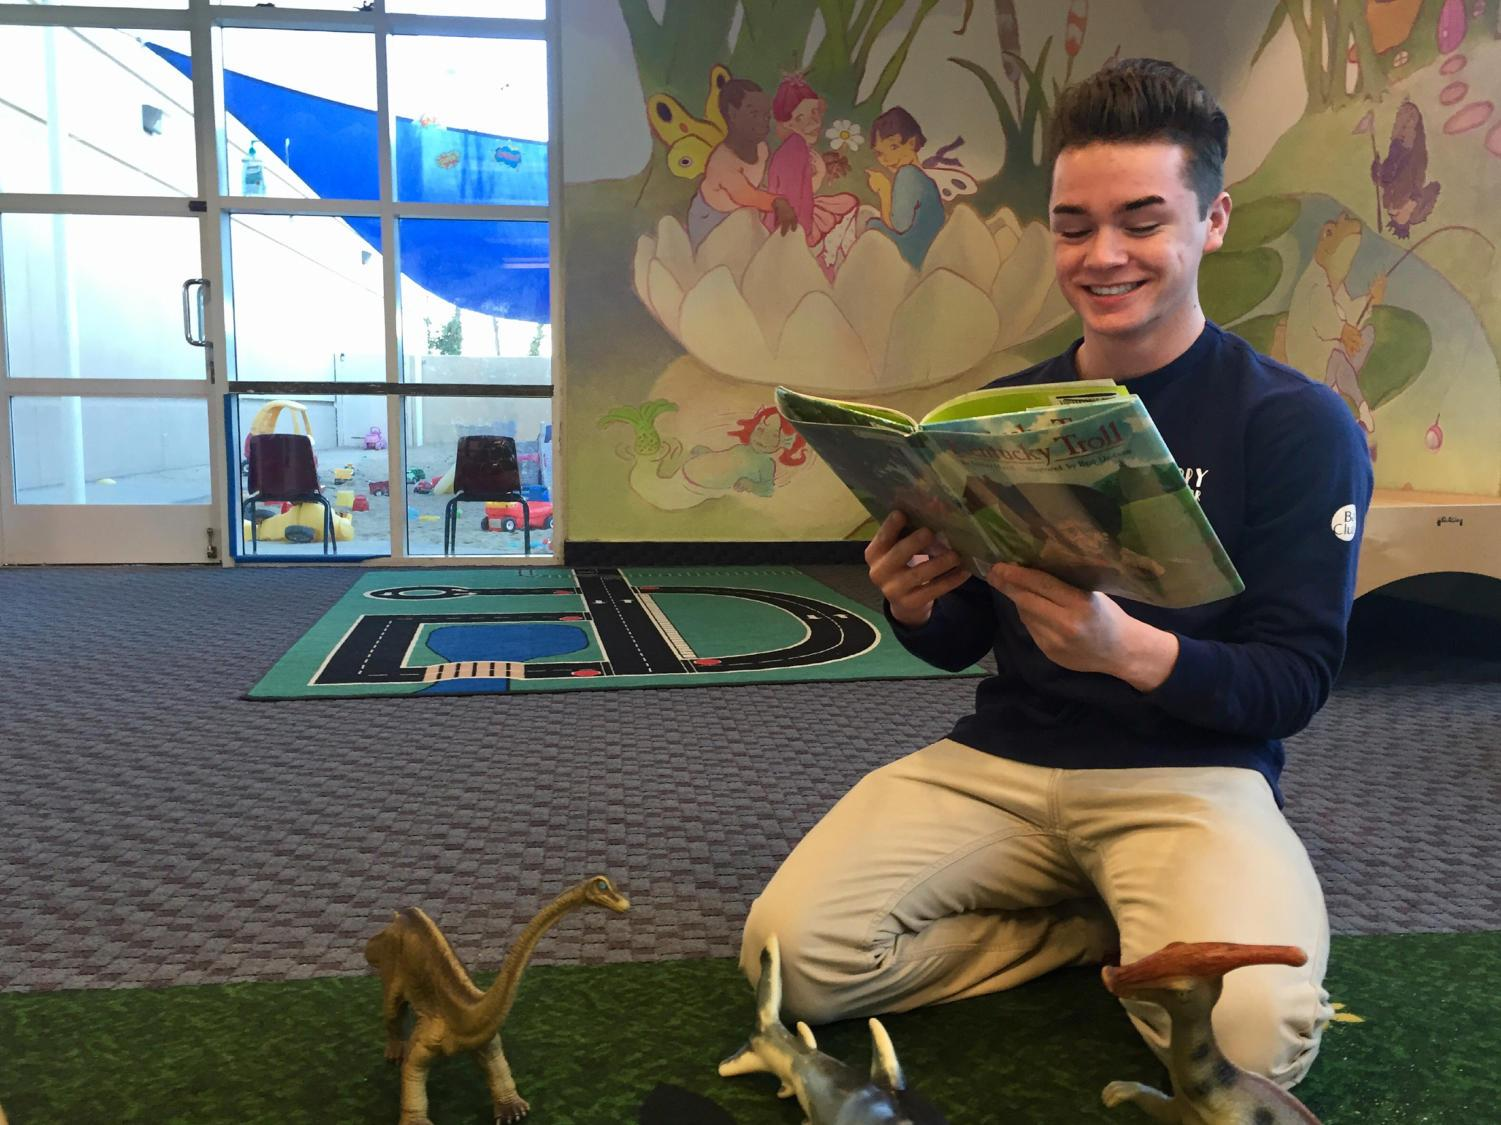 Ryan Huskey, a junior, reads to toddlers as a part of his job as a Childcare Associate at the Bay Club in Redwood Shores.